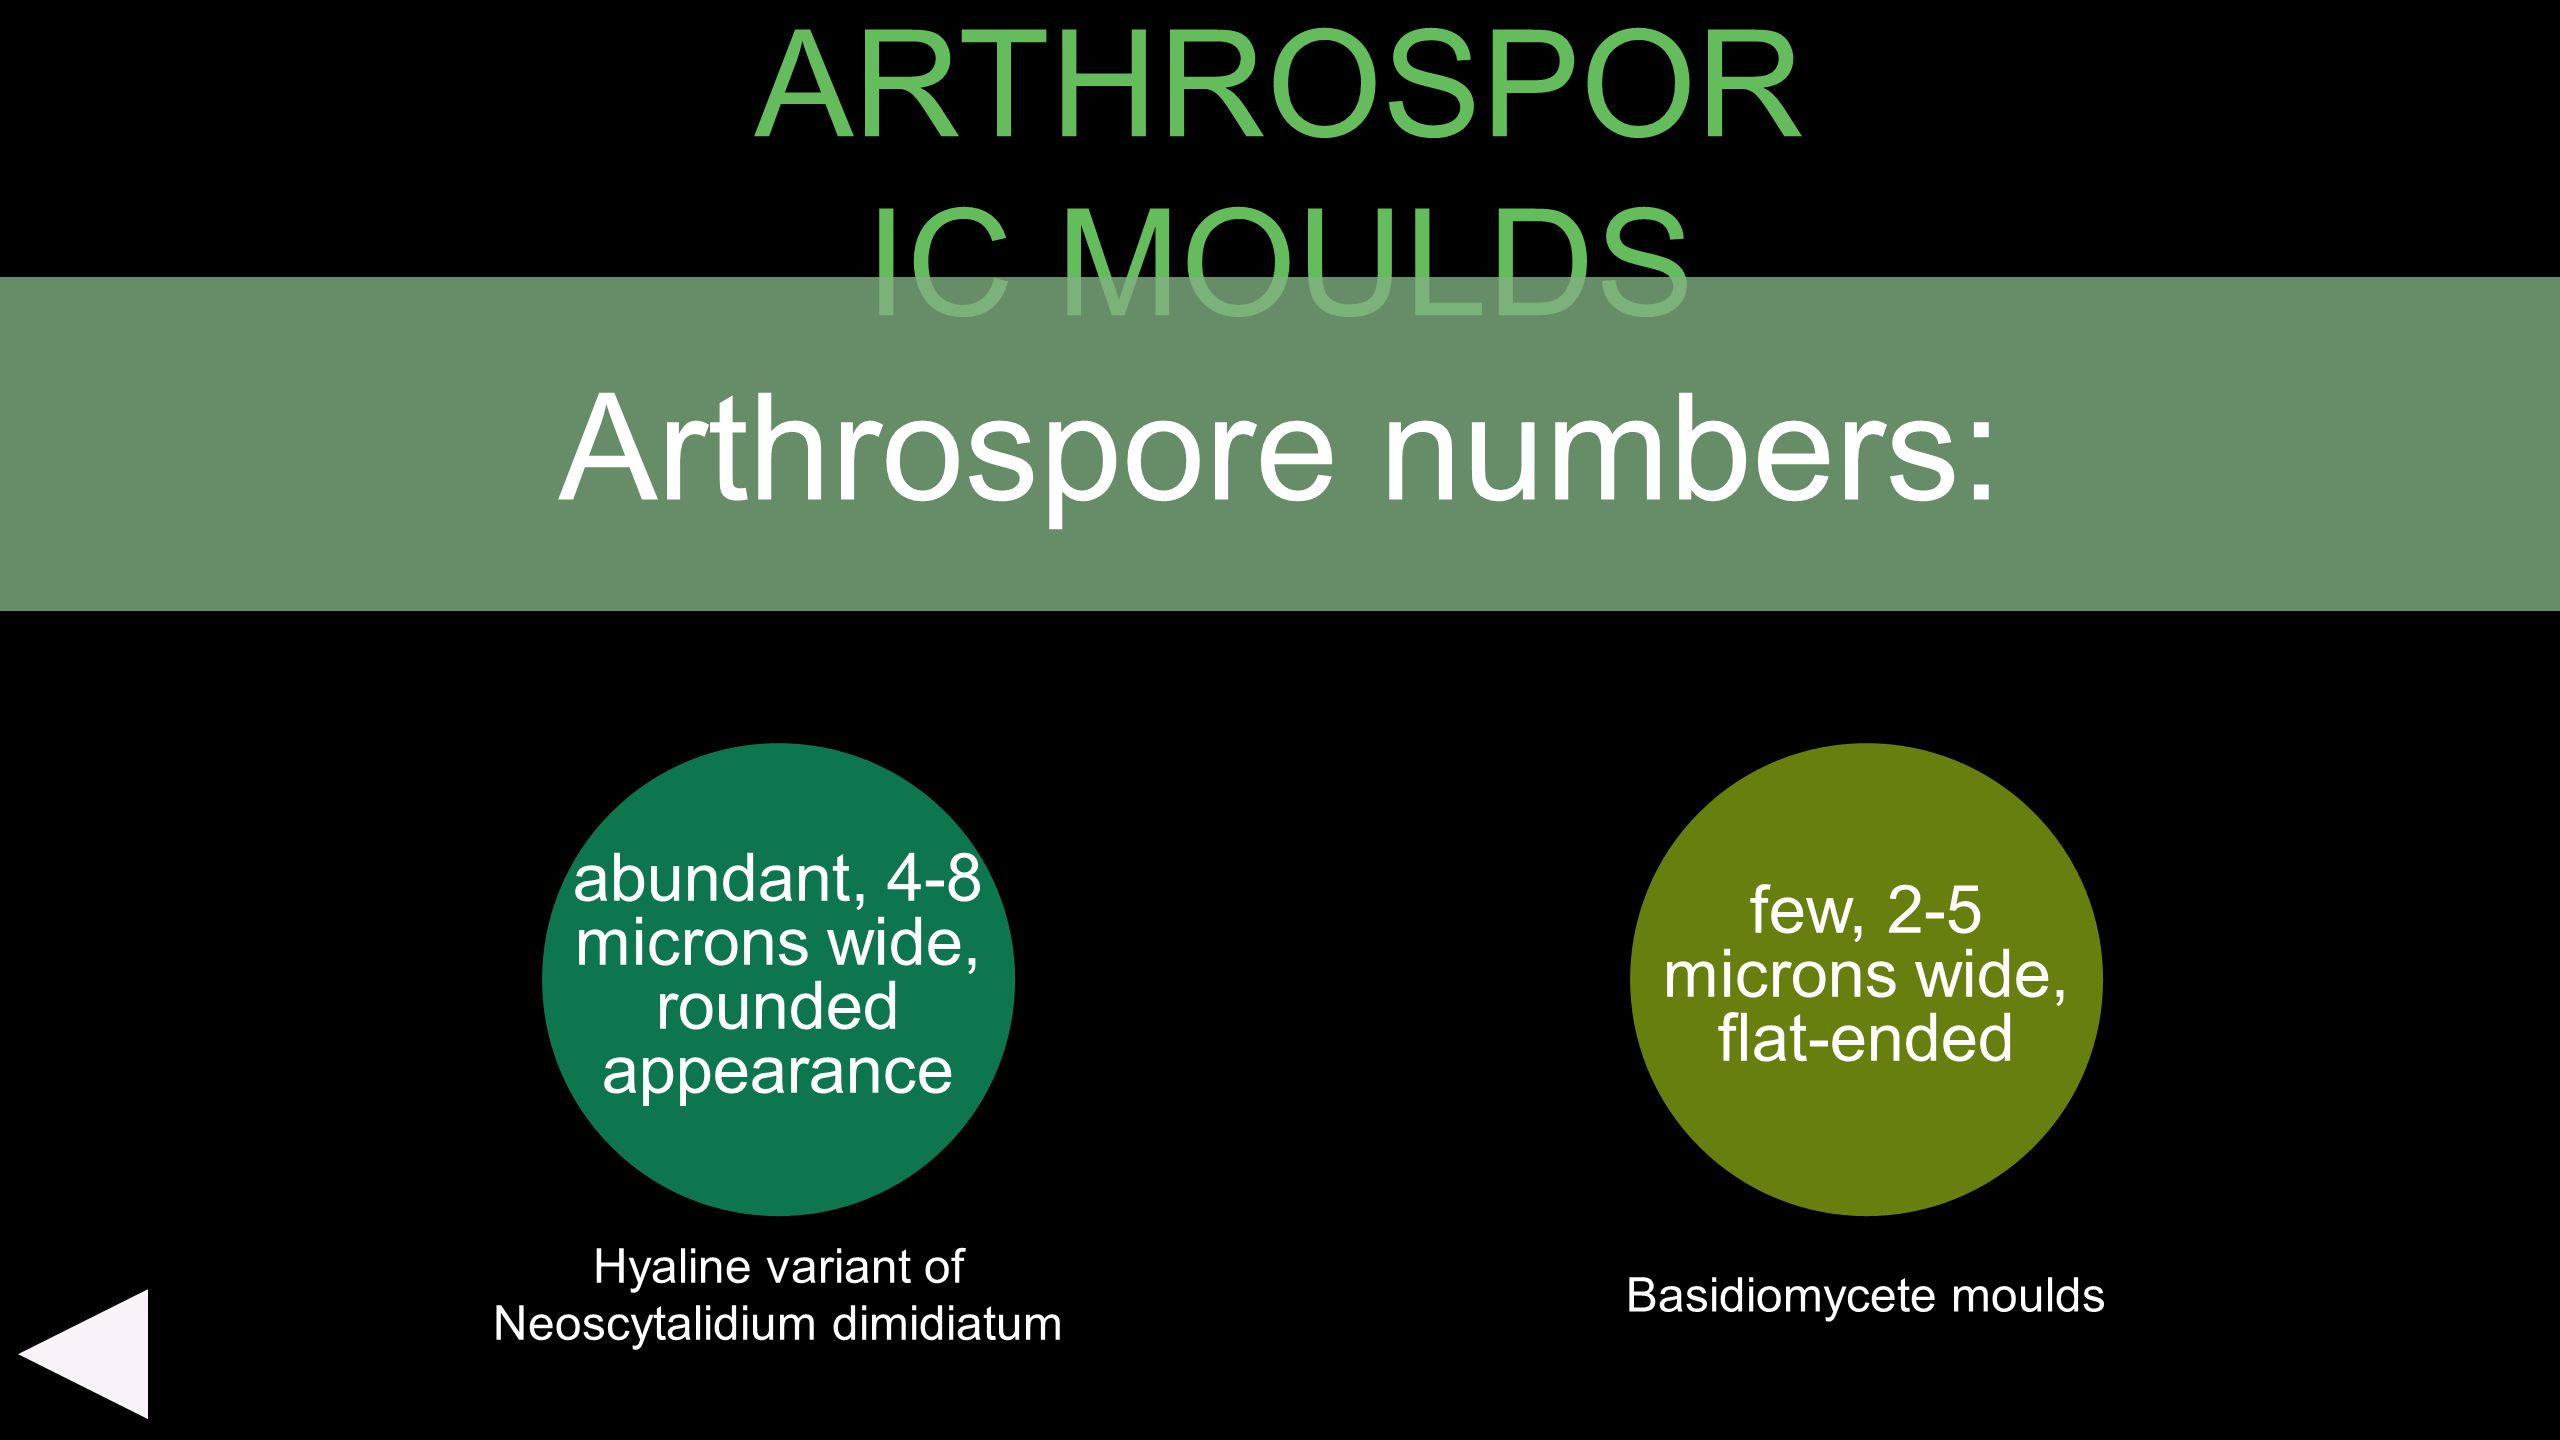 ARTHROSPOR IC MOULDS abundant, 4-8 microns wide, rounded appearance few, 2-5 microns wide, flat-ended Arthrospore numbers: Basidiomycete moulds Hyalin